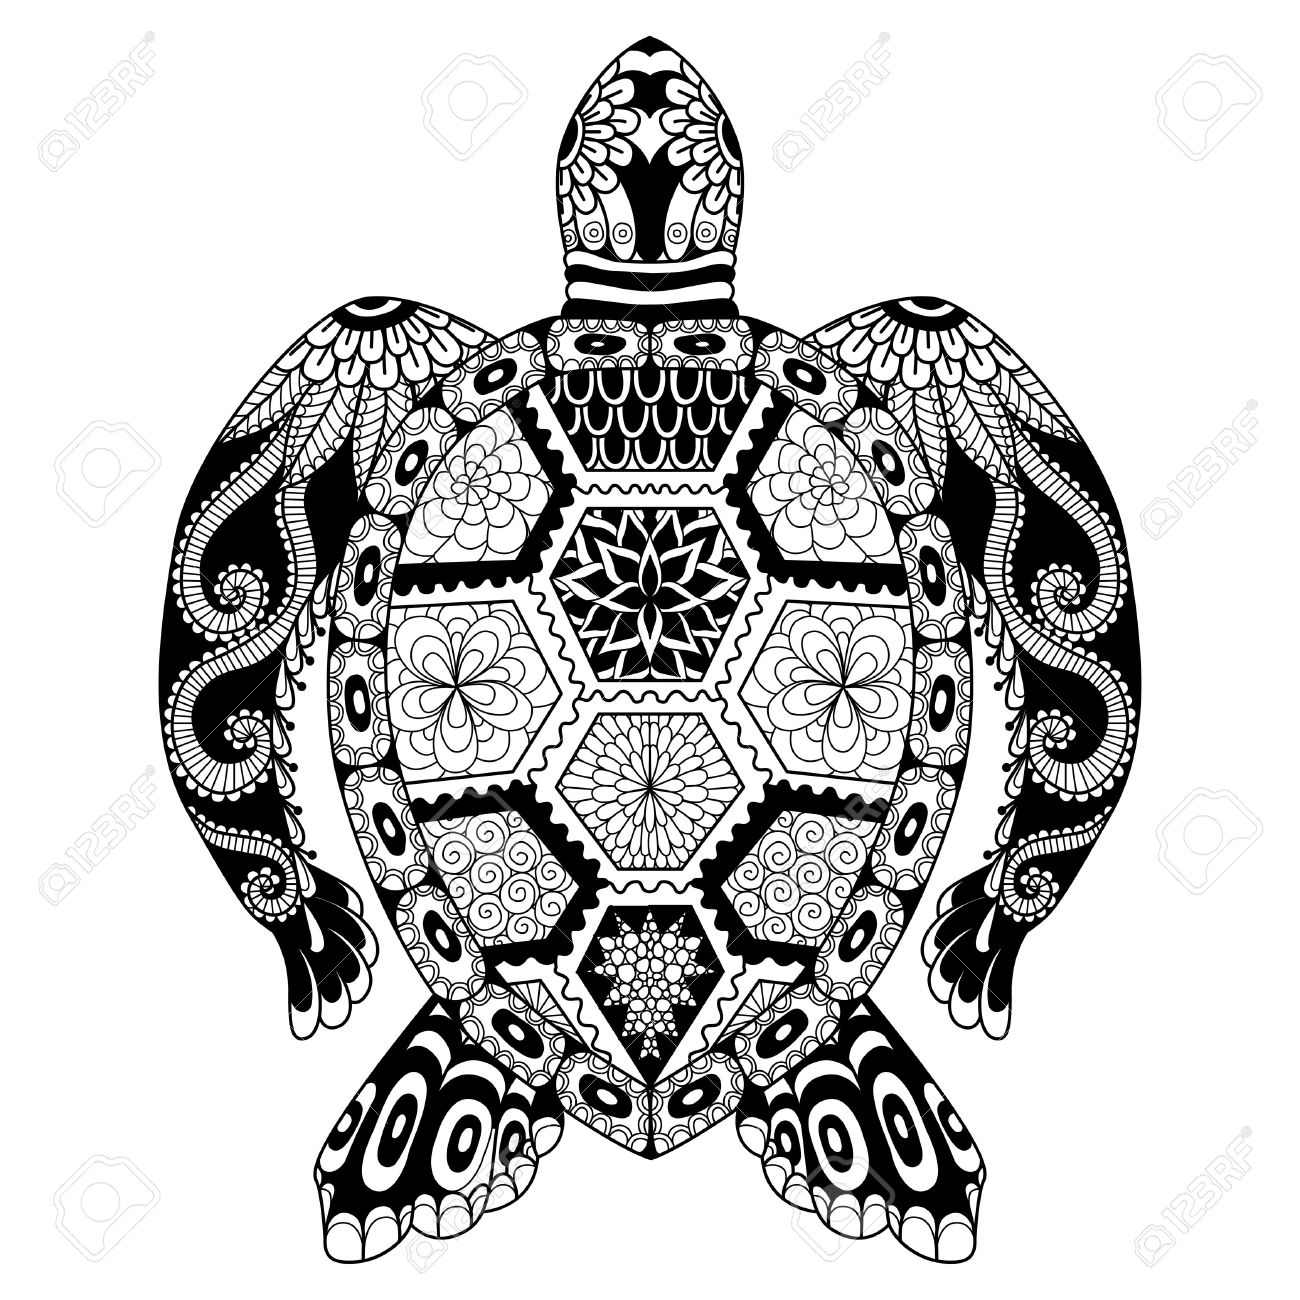 Drawing Zentangle Turtle For Coloring Page Shirt Design Effect Logo Tattoo And Decoration